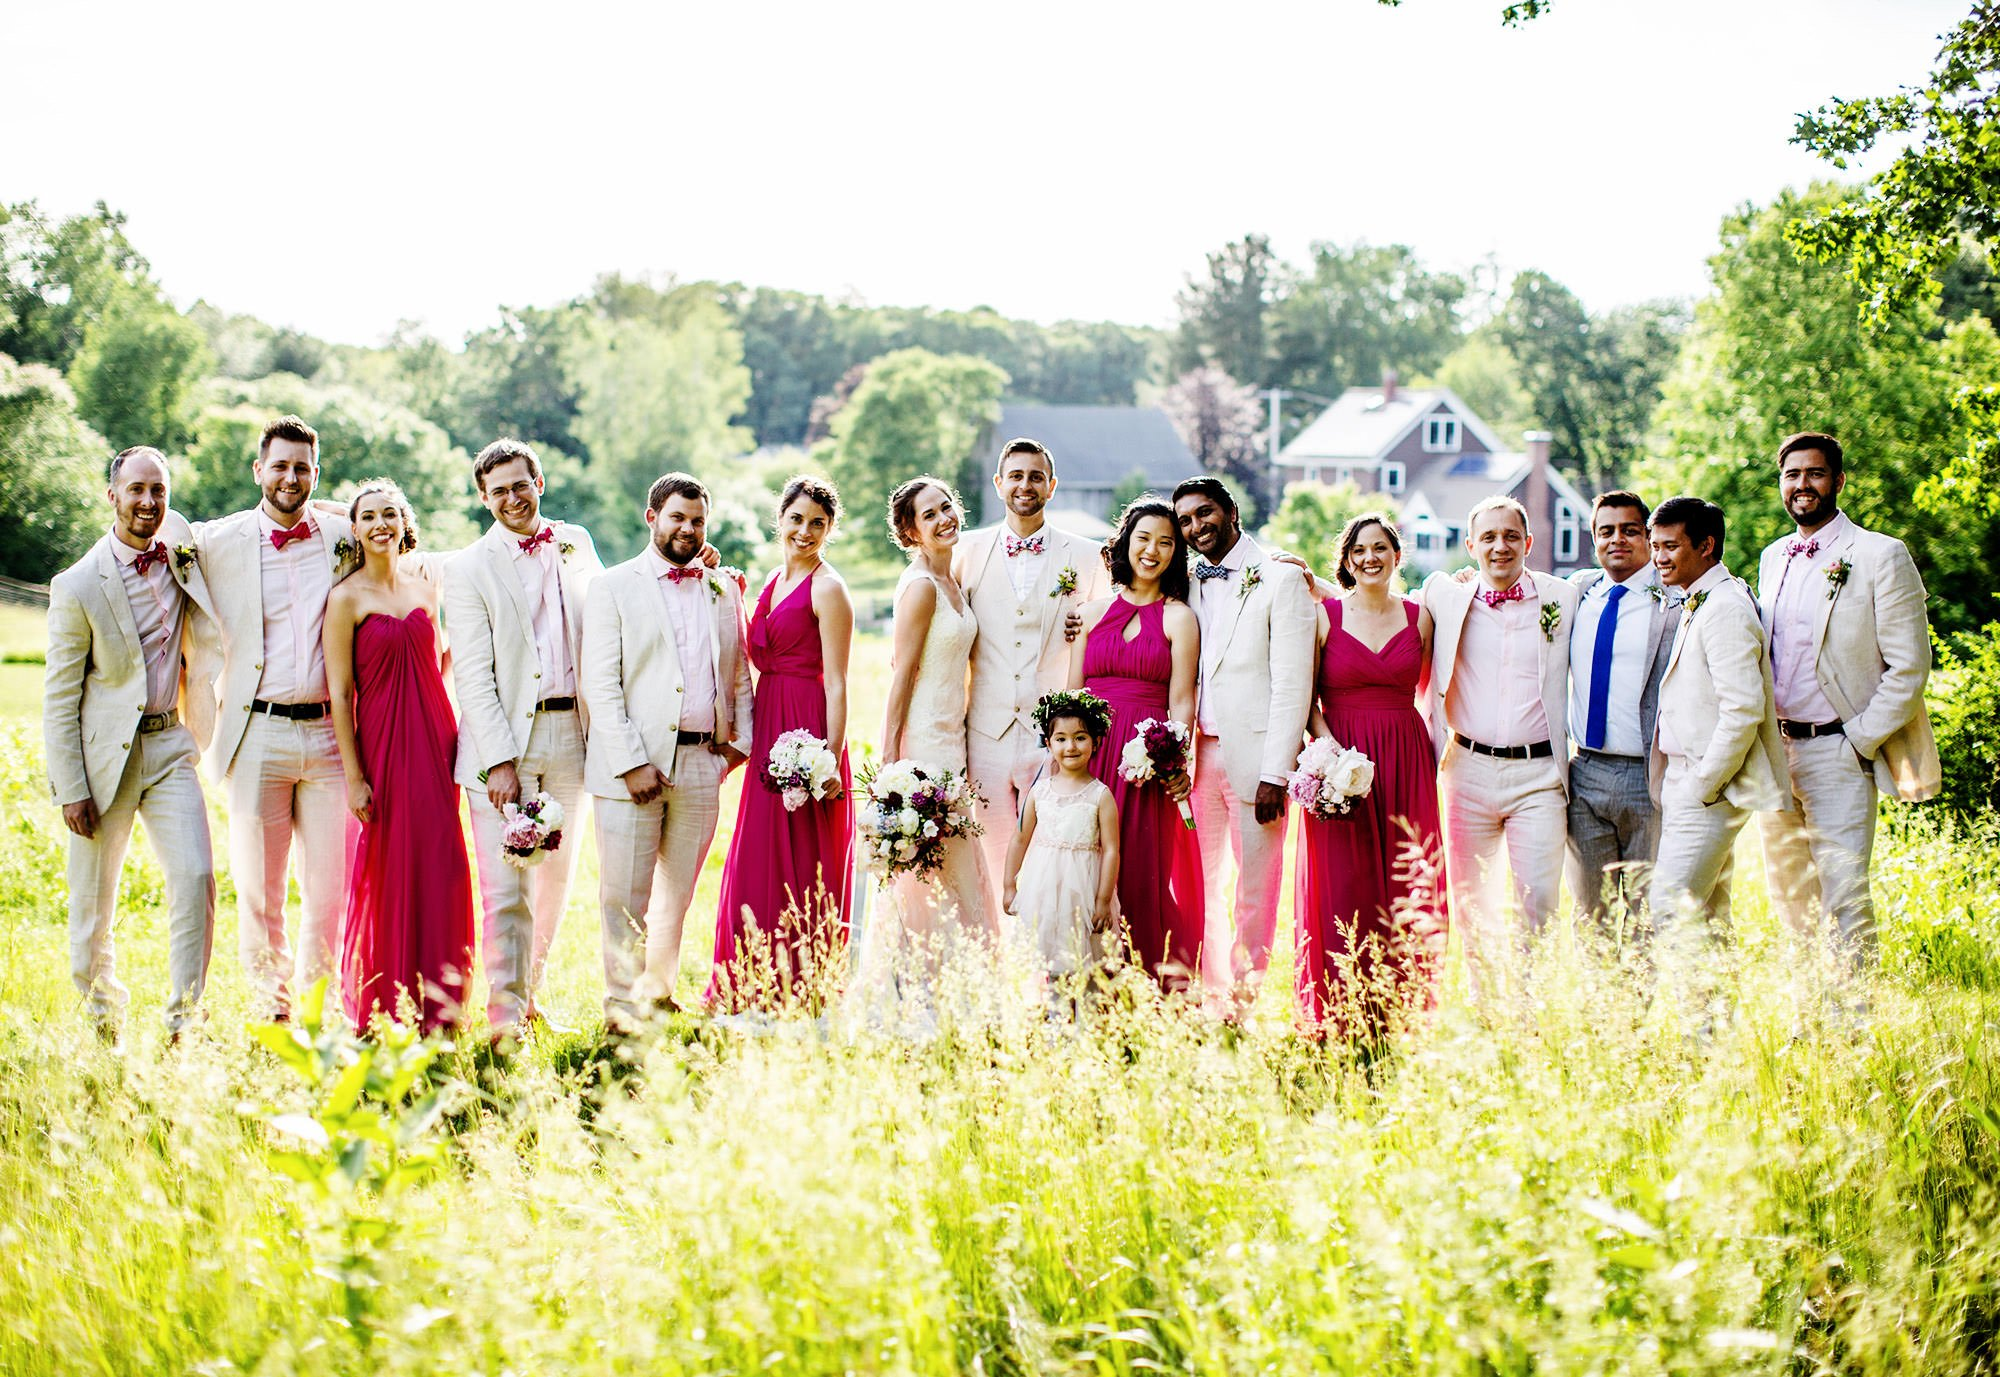 The wedding party following the outdoor ceremony.